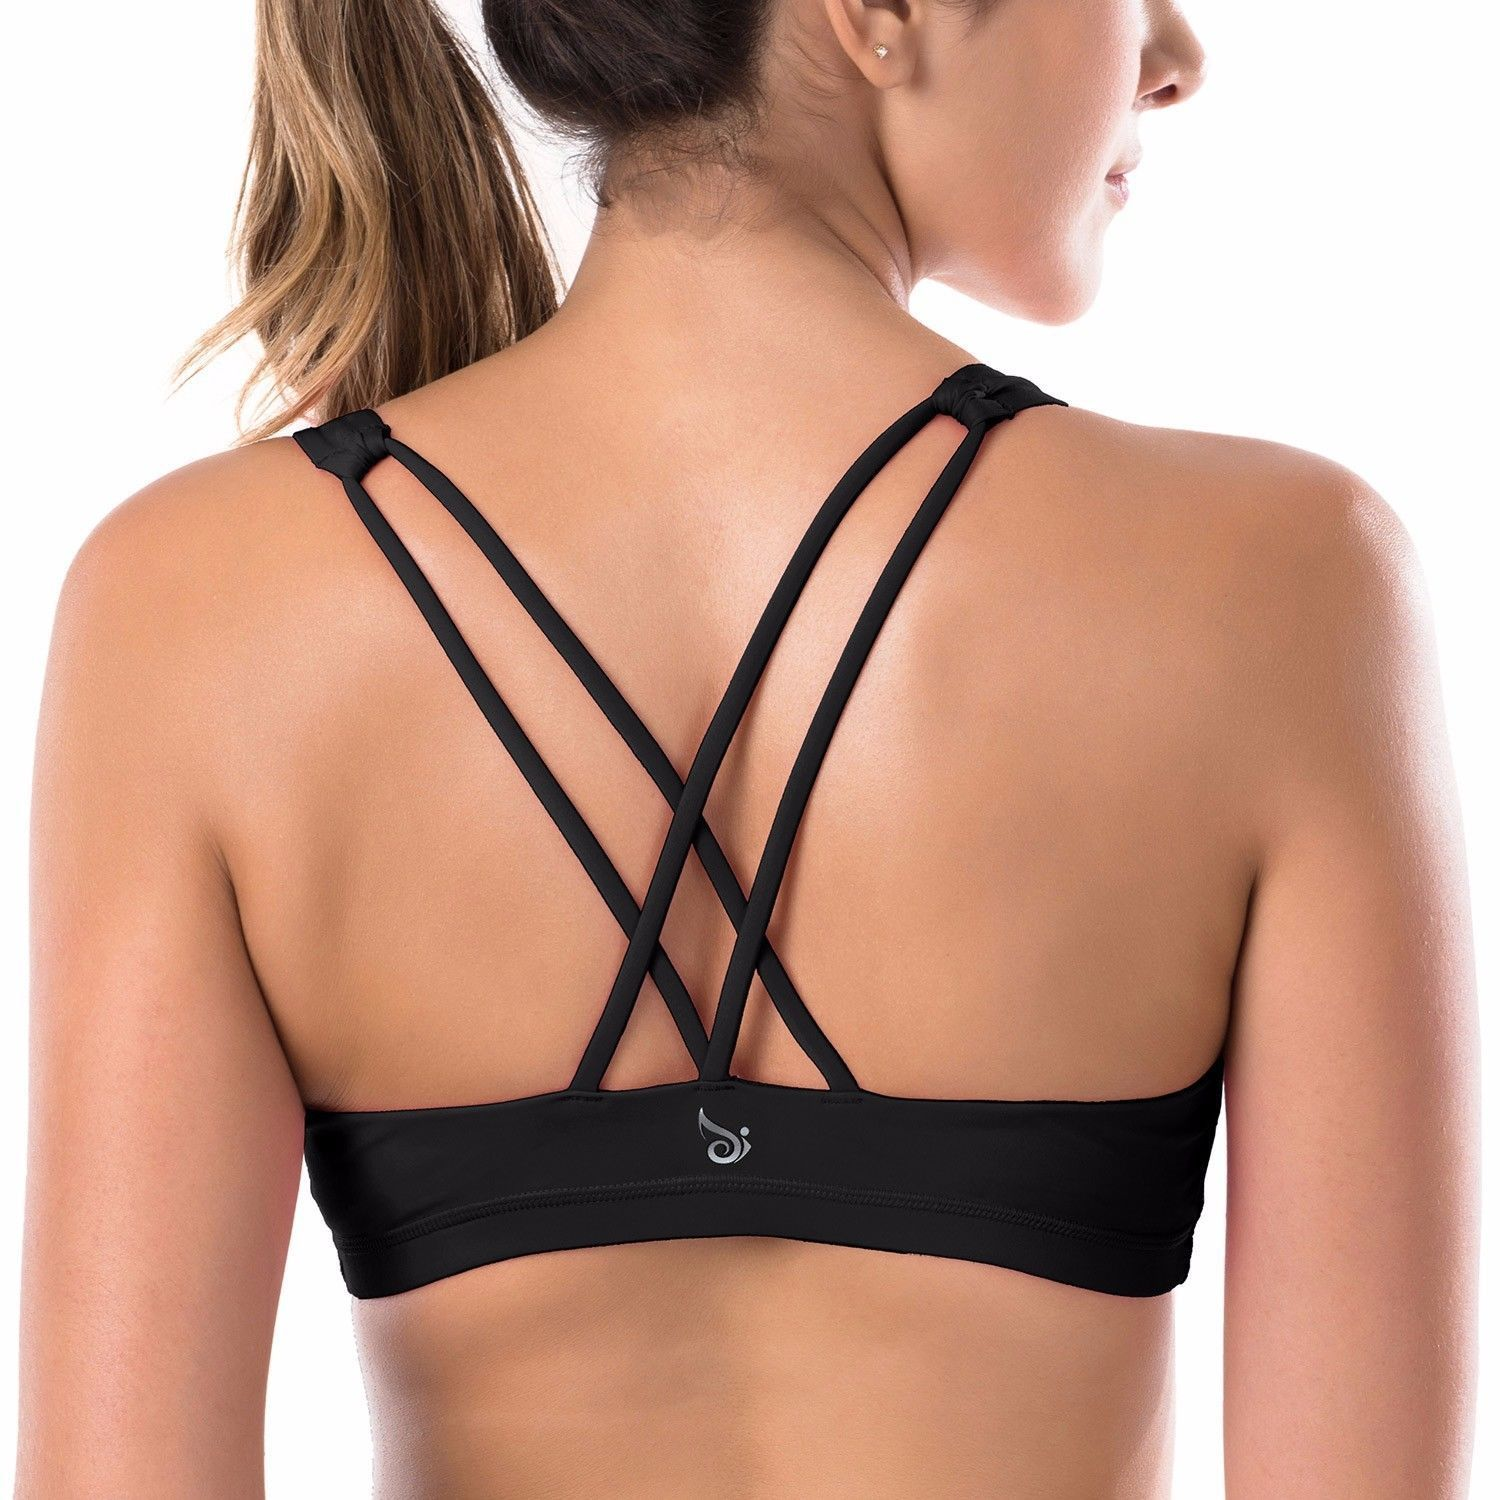 749ddc0dbae6c La Isla Women s Light Support Cross Back Wirefree Removable Cups Yoga Sports  Bra   Learn more by visiting the image link.